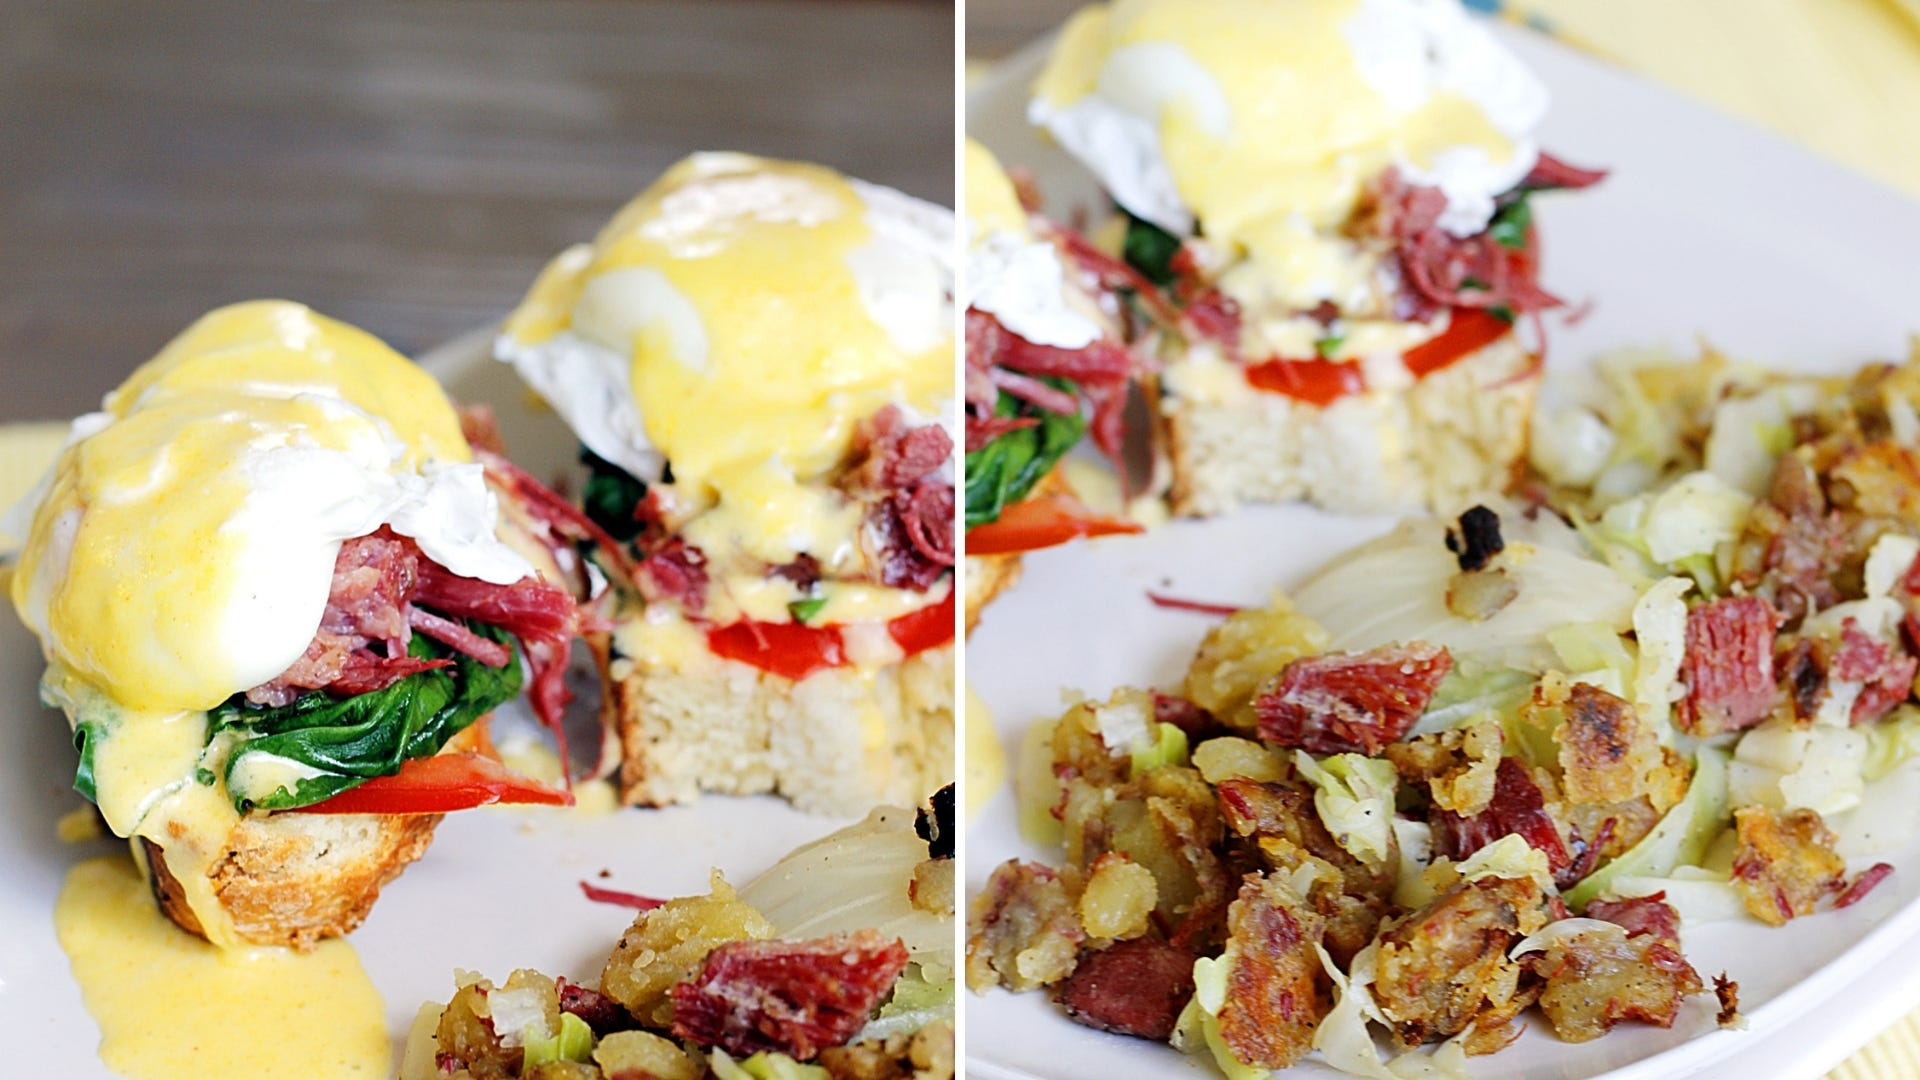 Eggs Benedict sitting next to a hash made with potatoes and cabbage.